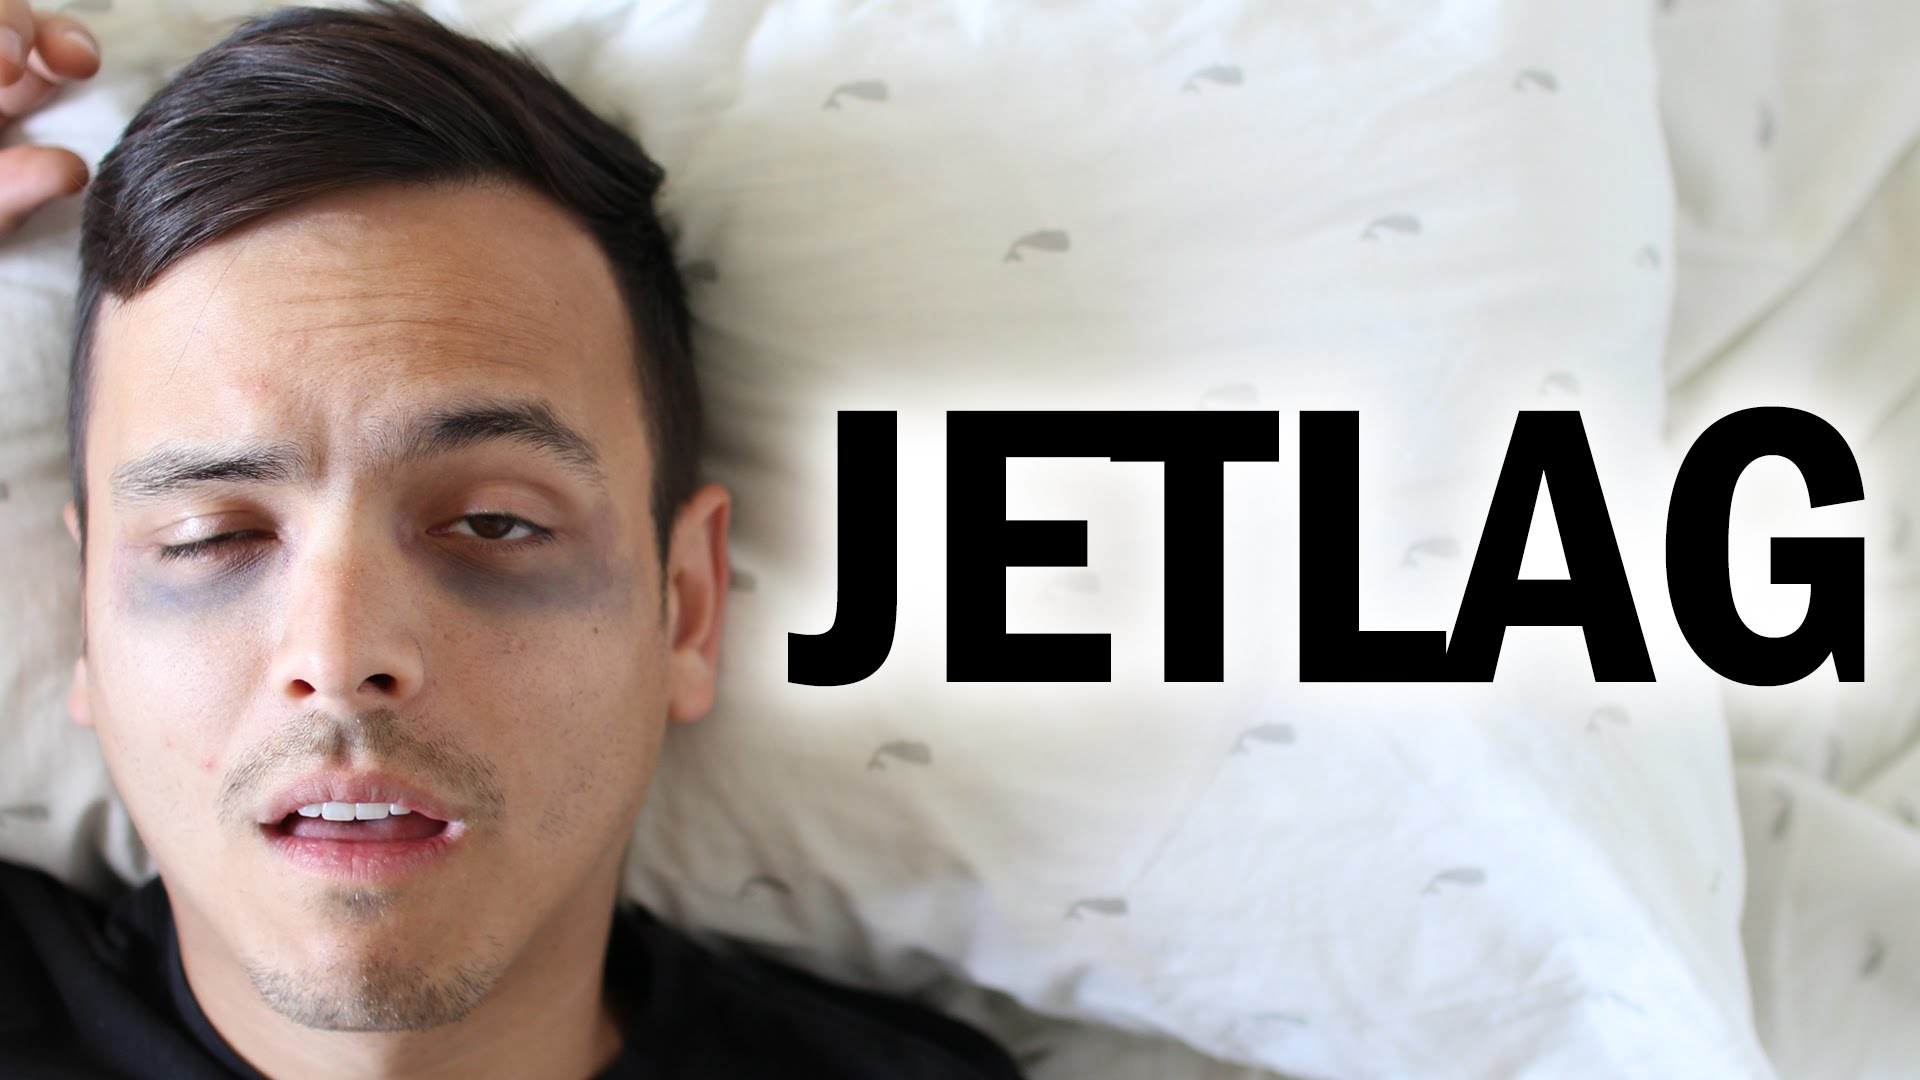 Dealing with Jet Lag